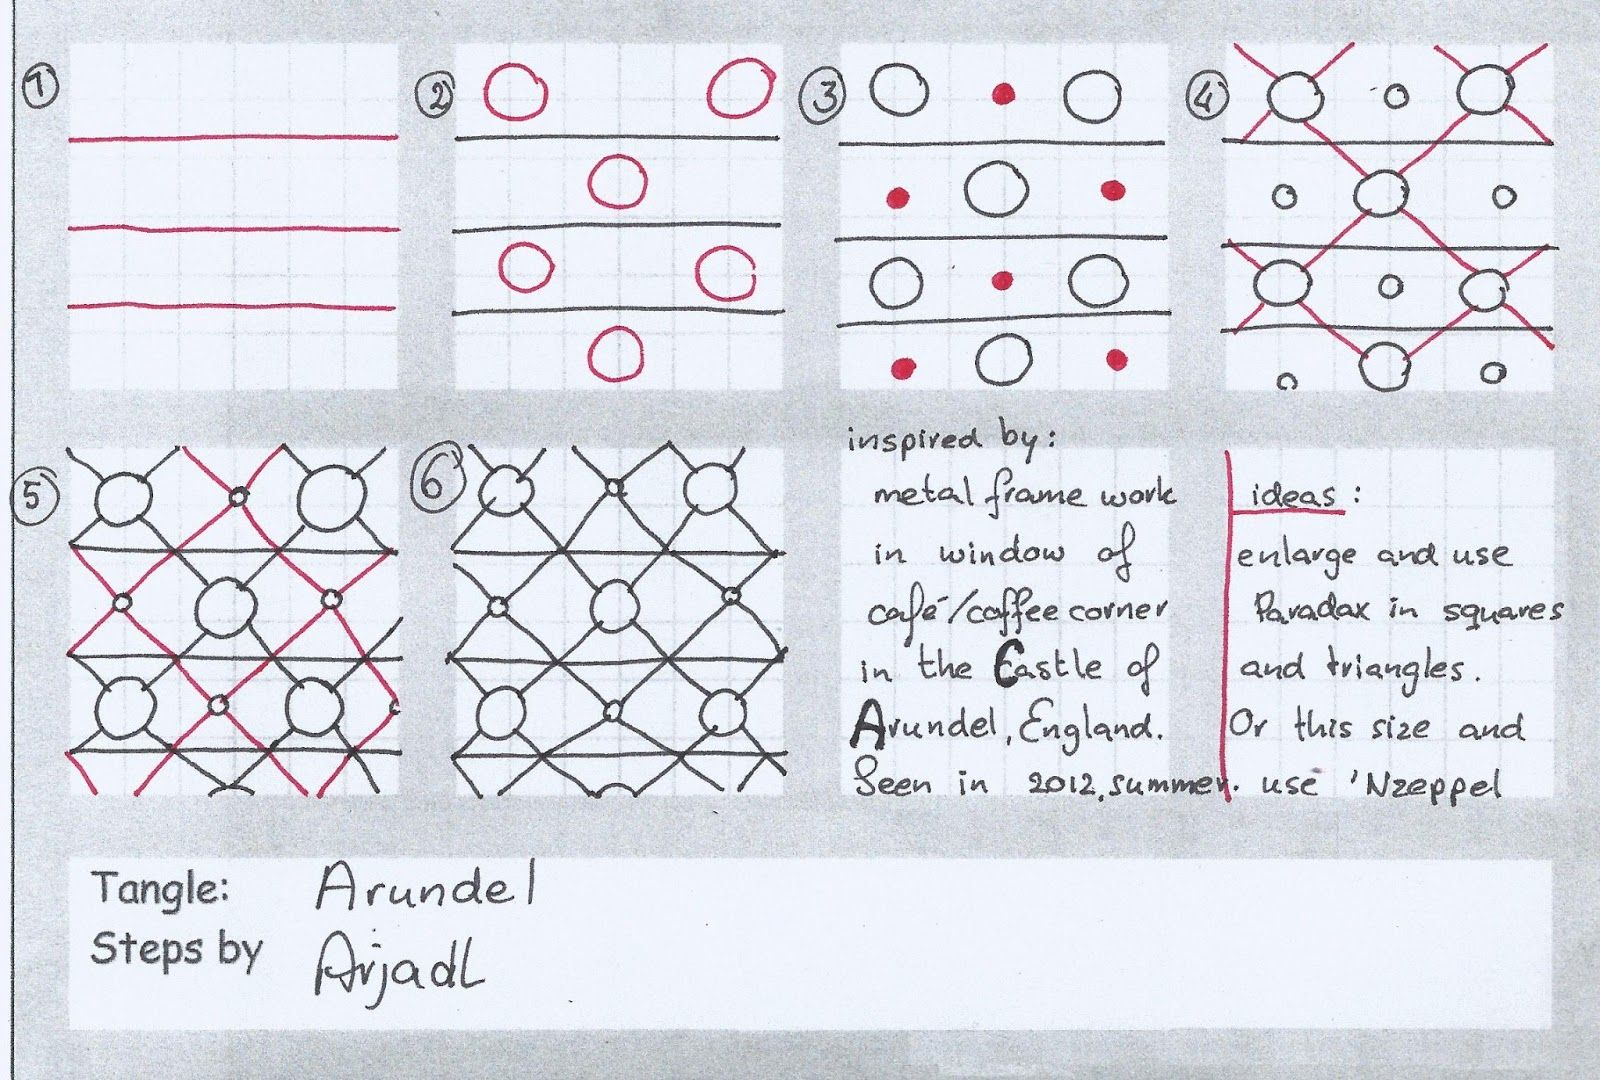 """elefantangle: Nieuwe zomer tangle: Arundel / new summer tangle: Arundel CZT Arja de Lange-Huisman of Gouda in the Netherlands shares the tangle Arundel with us.  Arja deconstructed this from the pattern she observed in the """"metal framework of a window in a café"""". The café is located in the medieval Arundel Castle, in the market town of Arundel about 50 miles southwest of London, England. http://elefantangle.blogspot.com/2013/06/nieuwe-zomer-tangle-arundel-new-summer.html"""